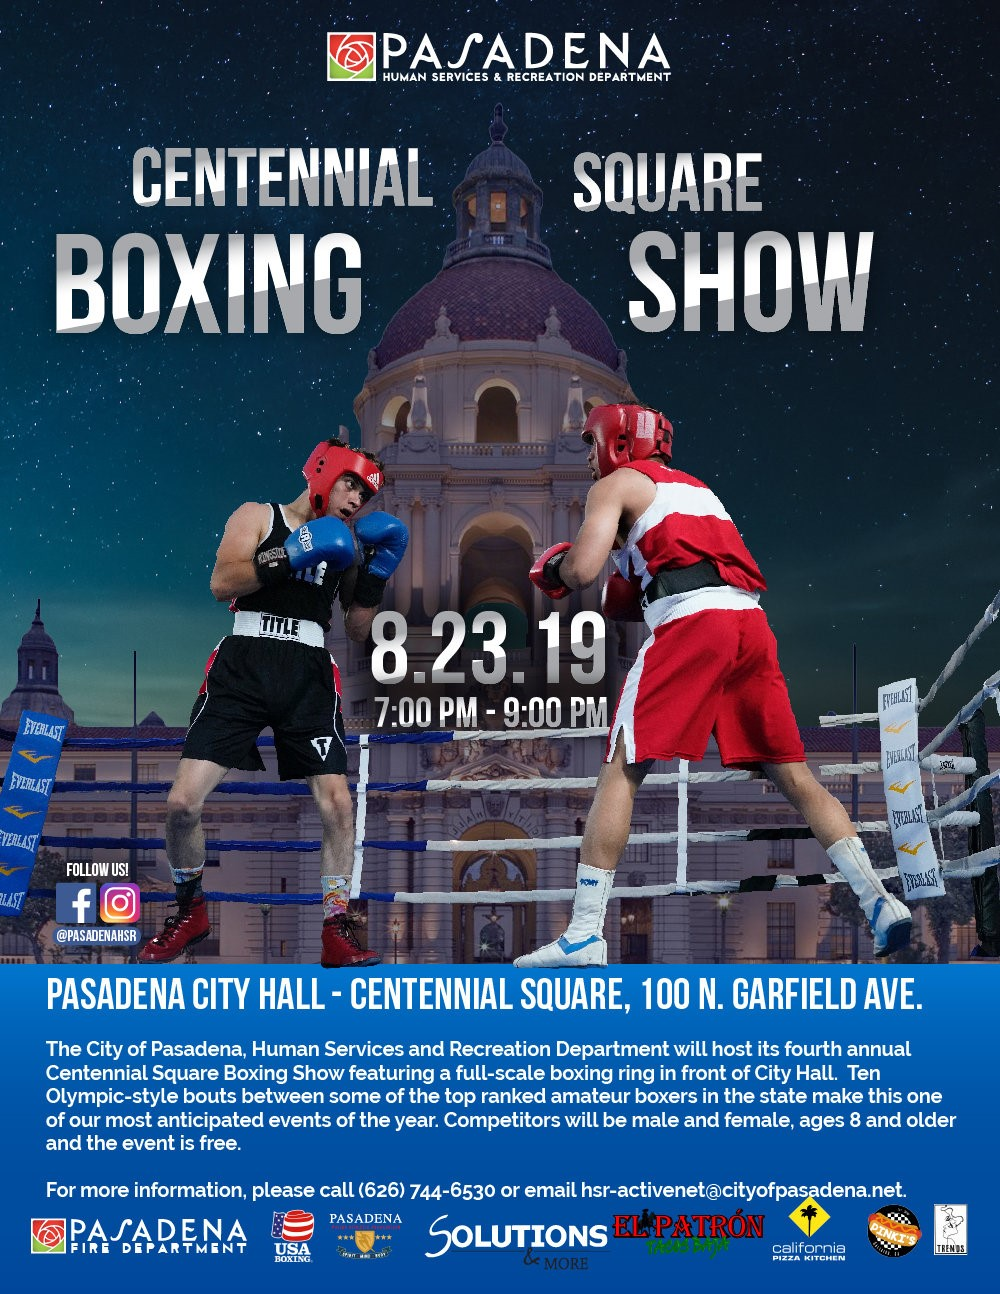 flyer with picture of boxers with date and time of event